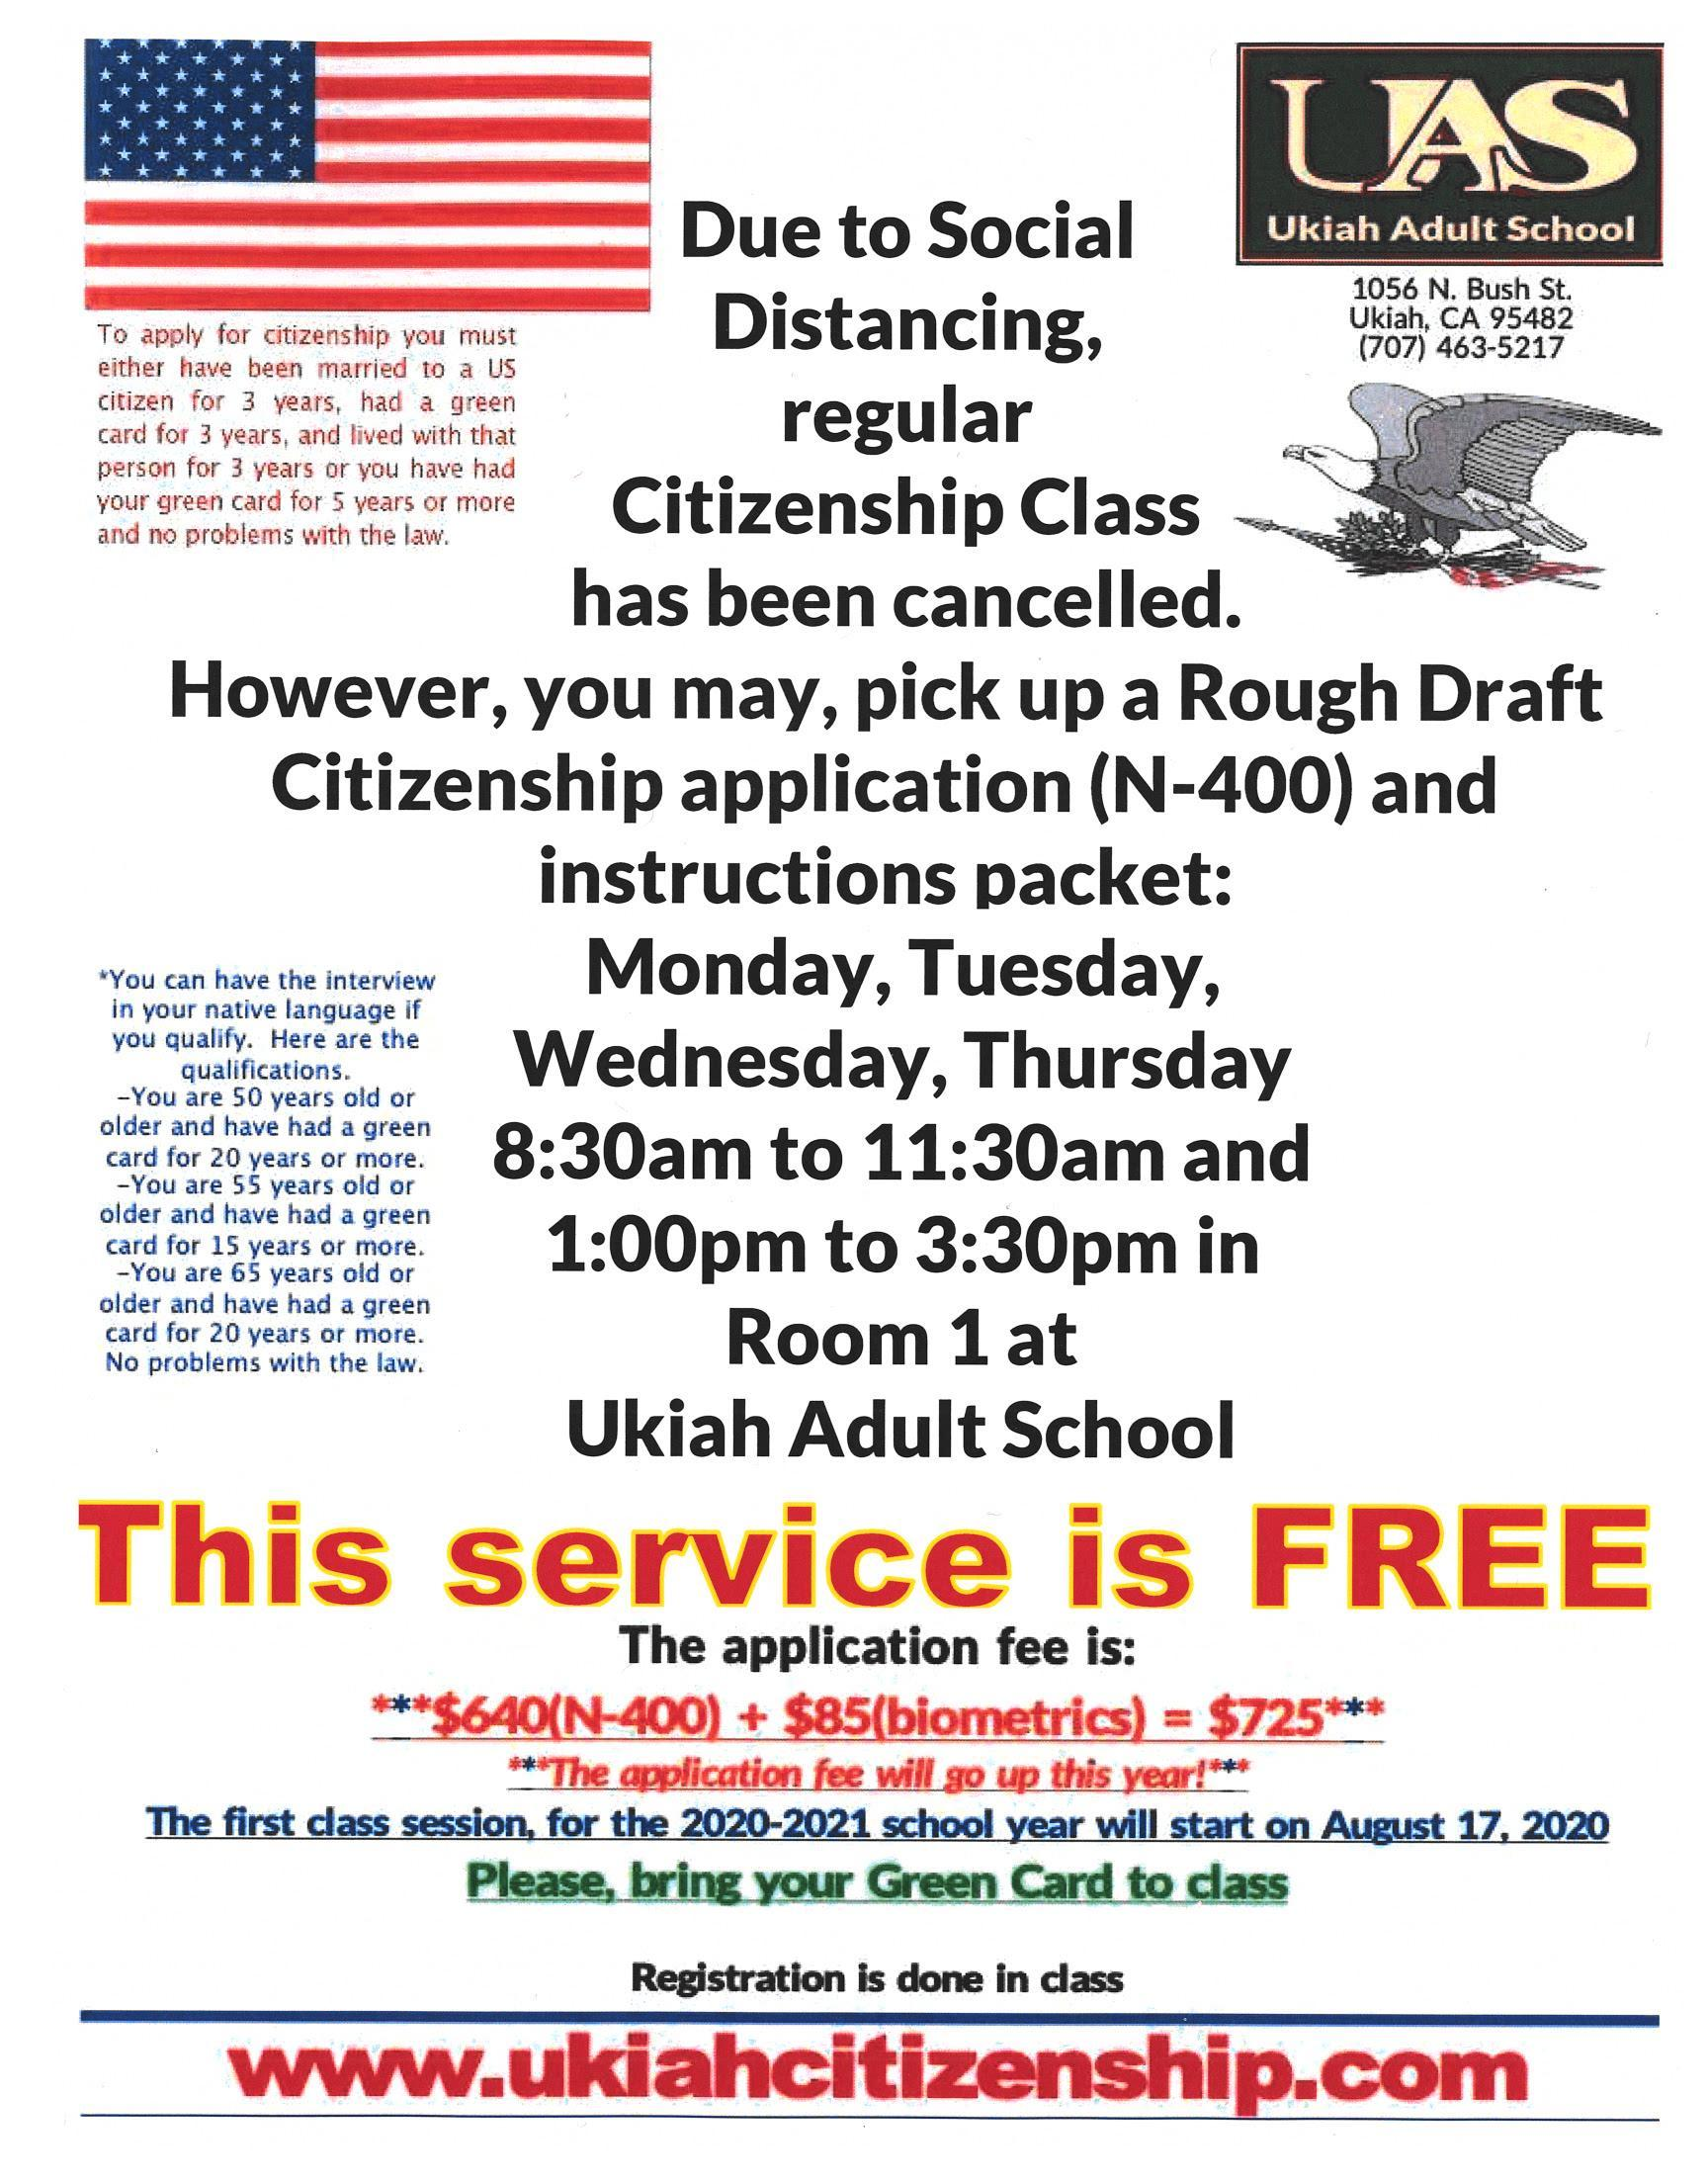 Due to Social Distancing Citizenship class cancelled.  you may pick up a Rough Draft Citizenship Application and instructions posters